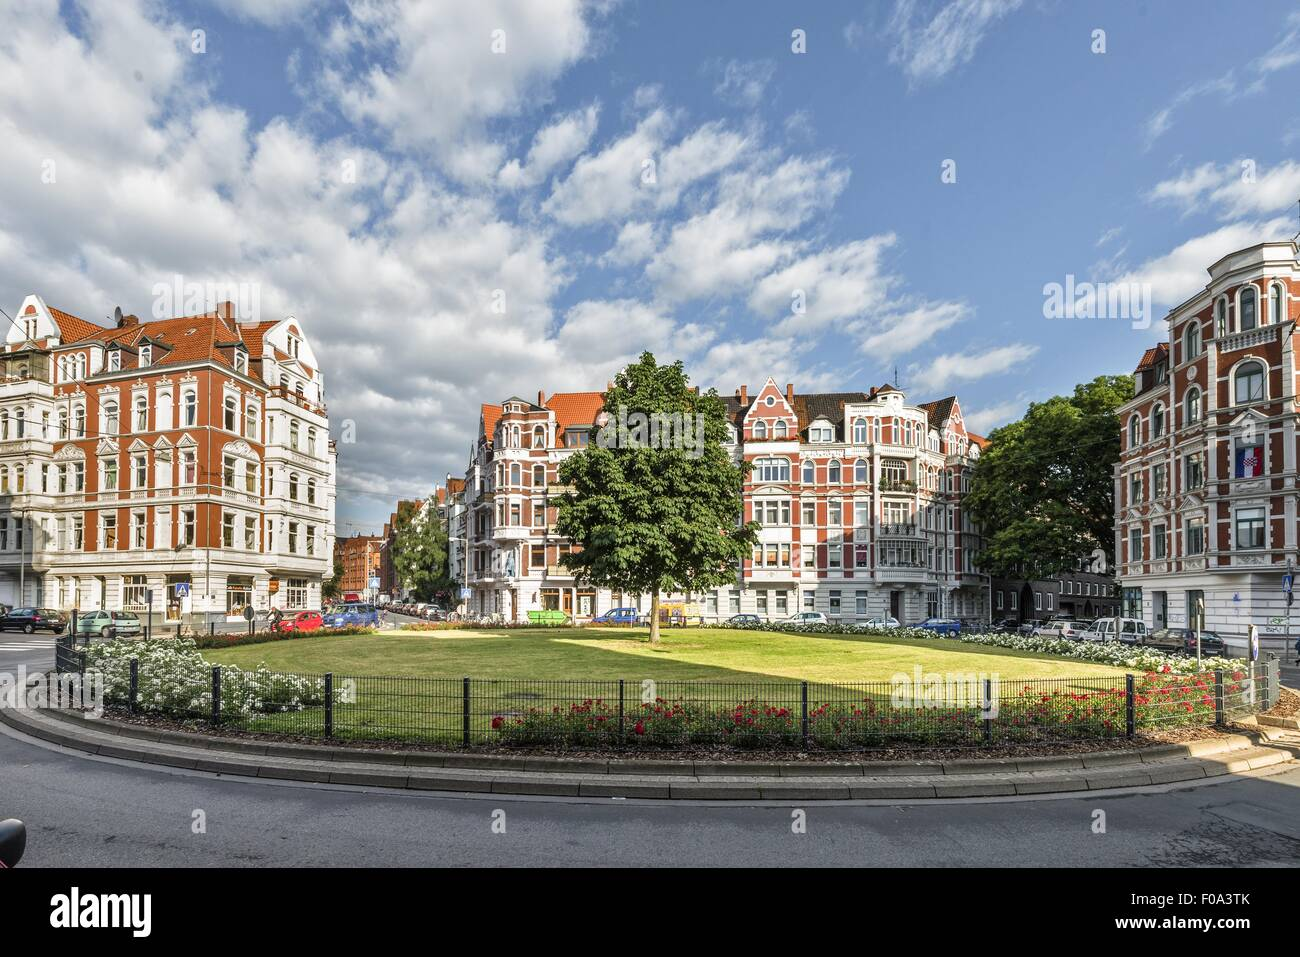 the facade of building in lichtenberg berlin germany stock photo 86274403 alamy. Black Bedroom Furniture Sets. Home Design Ideas